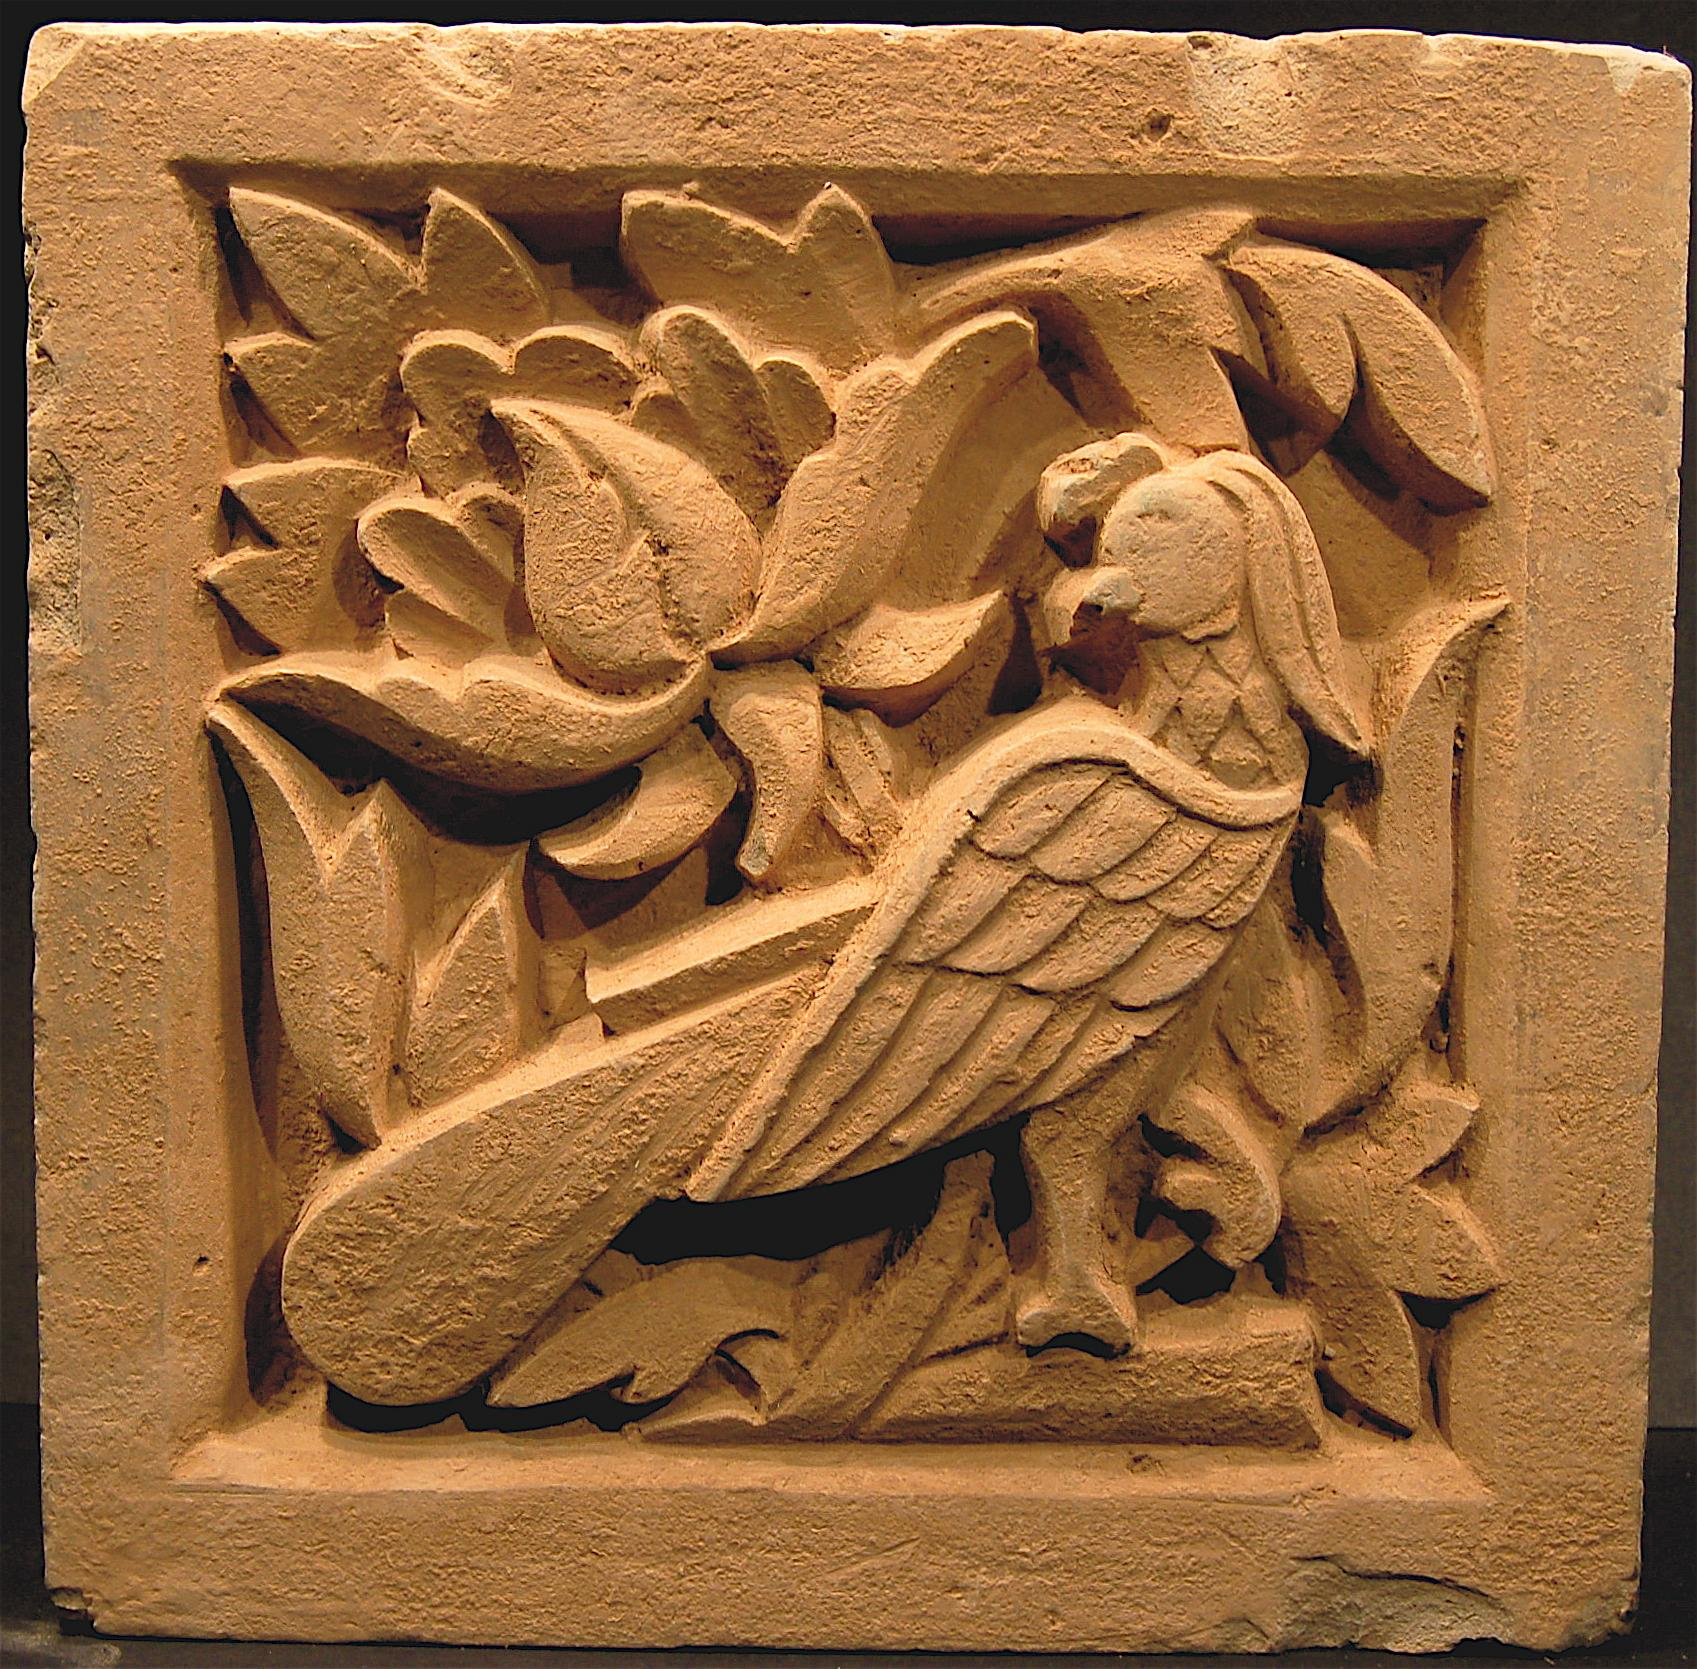 Carved pottery tiles dries blitz